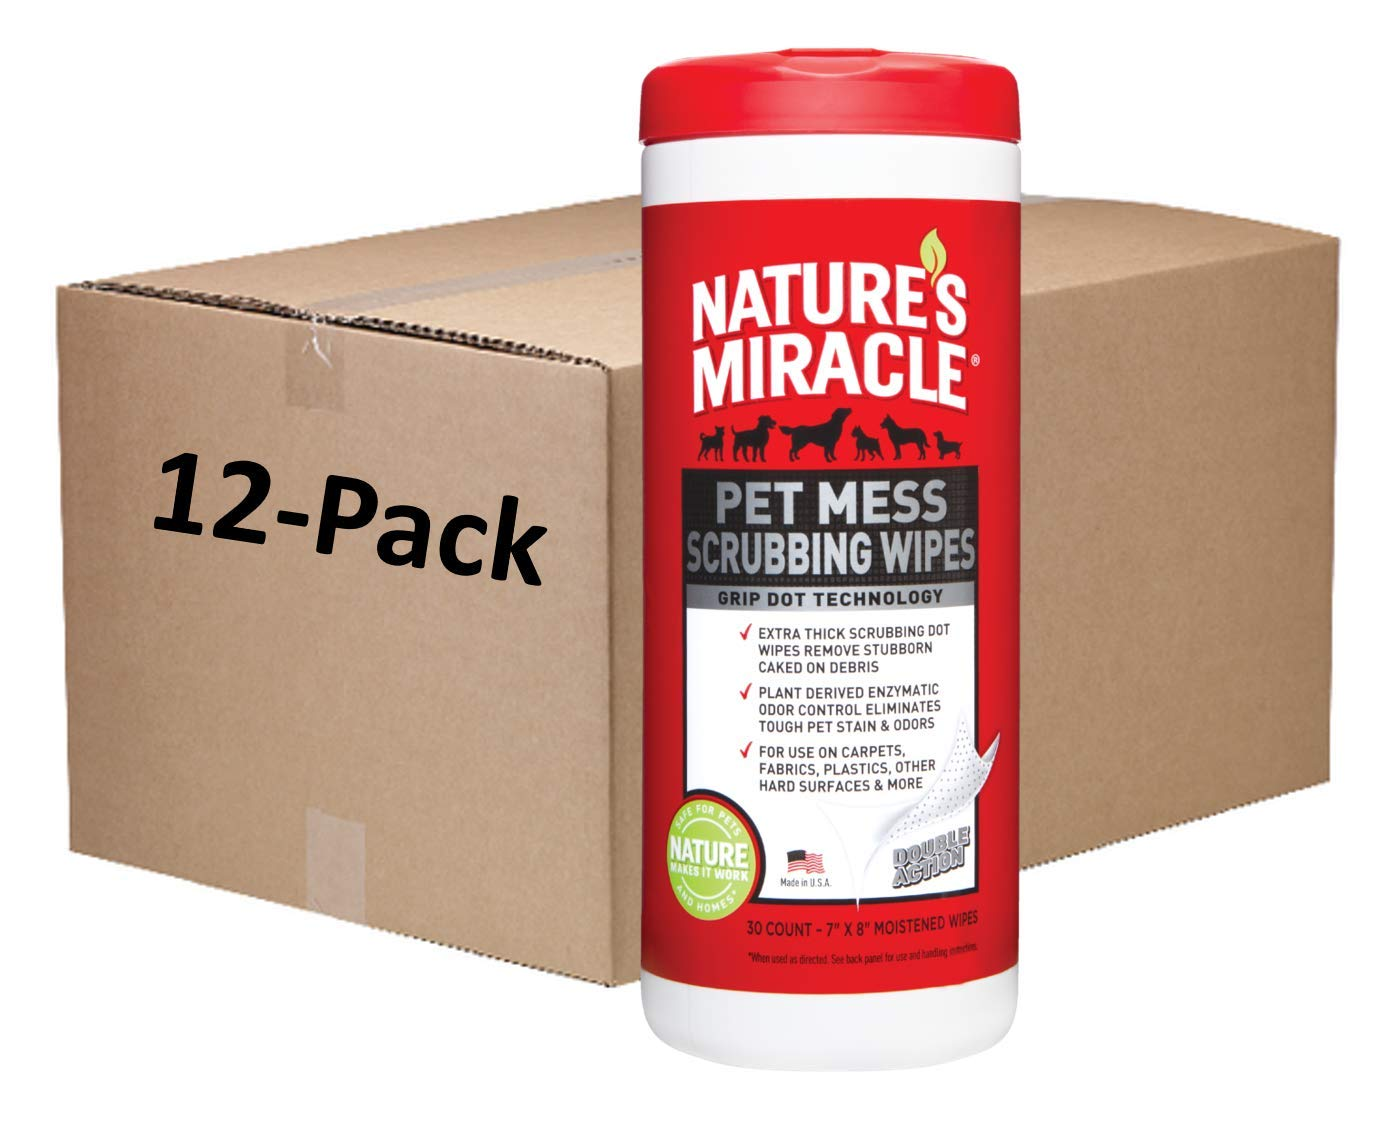 Nature's Miracle Pet Mess Scrubbing Wipes 30 Count, Removes Stubborn, Caked-On Debris (Pack of 12) by Nature's Miracle